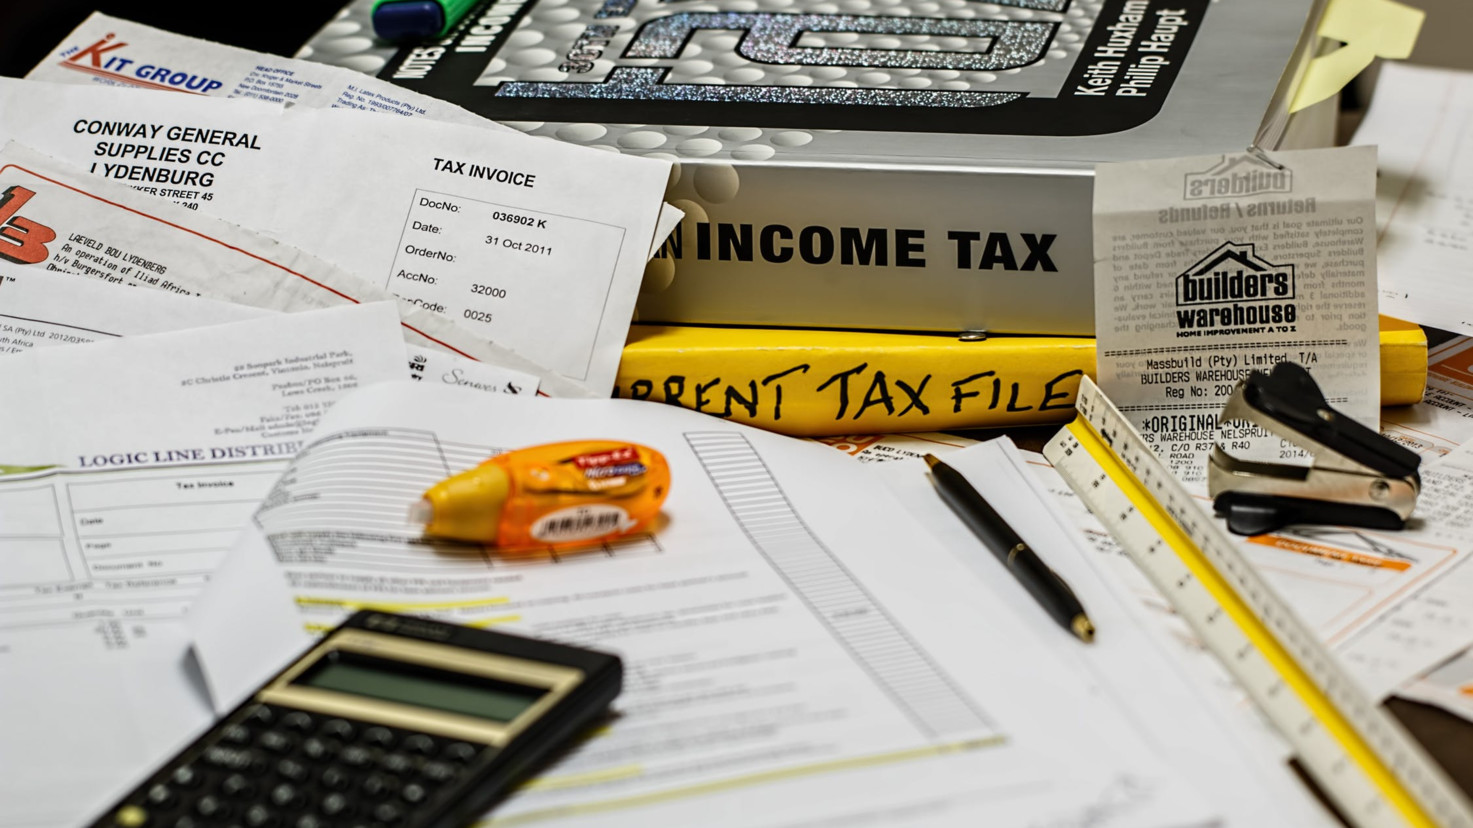 Investment tax in the UK: How do I pay it